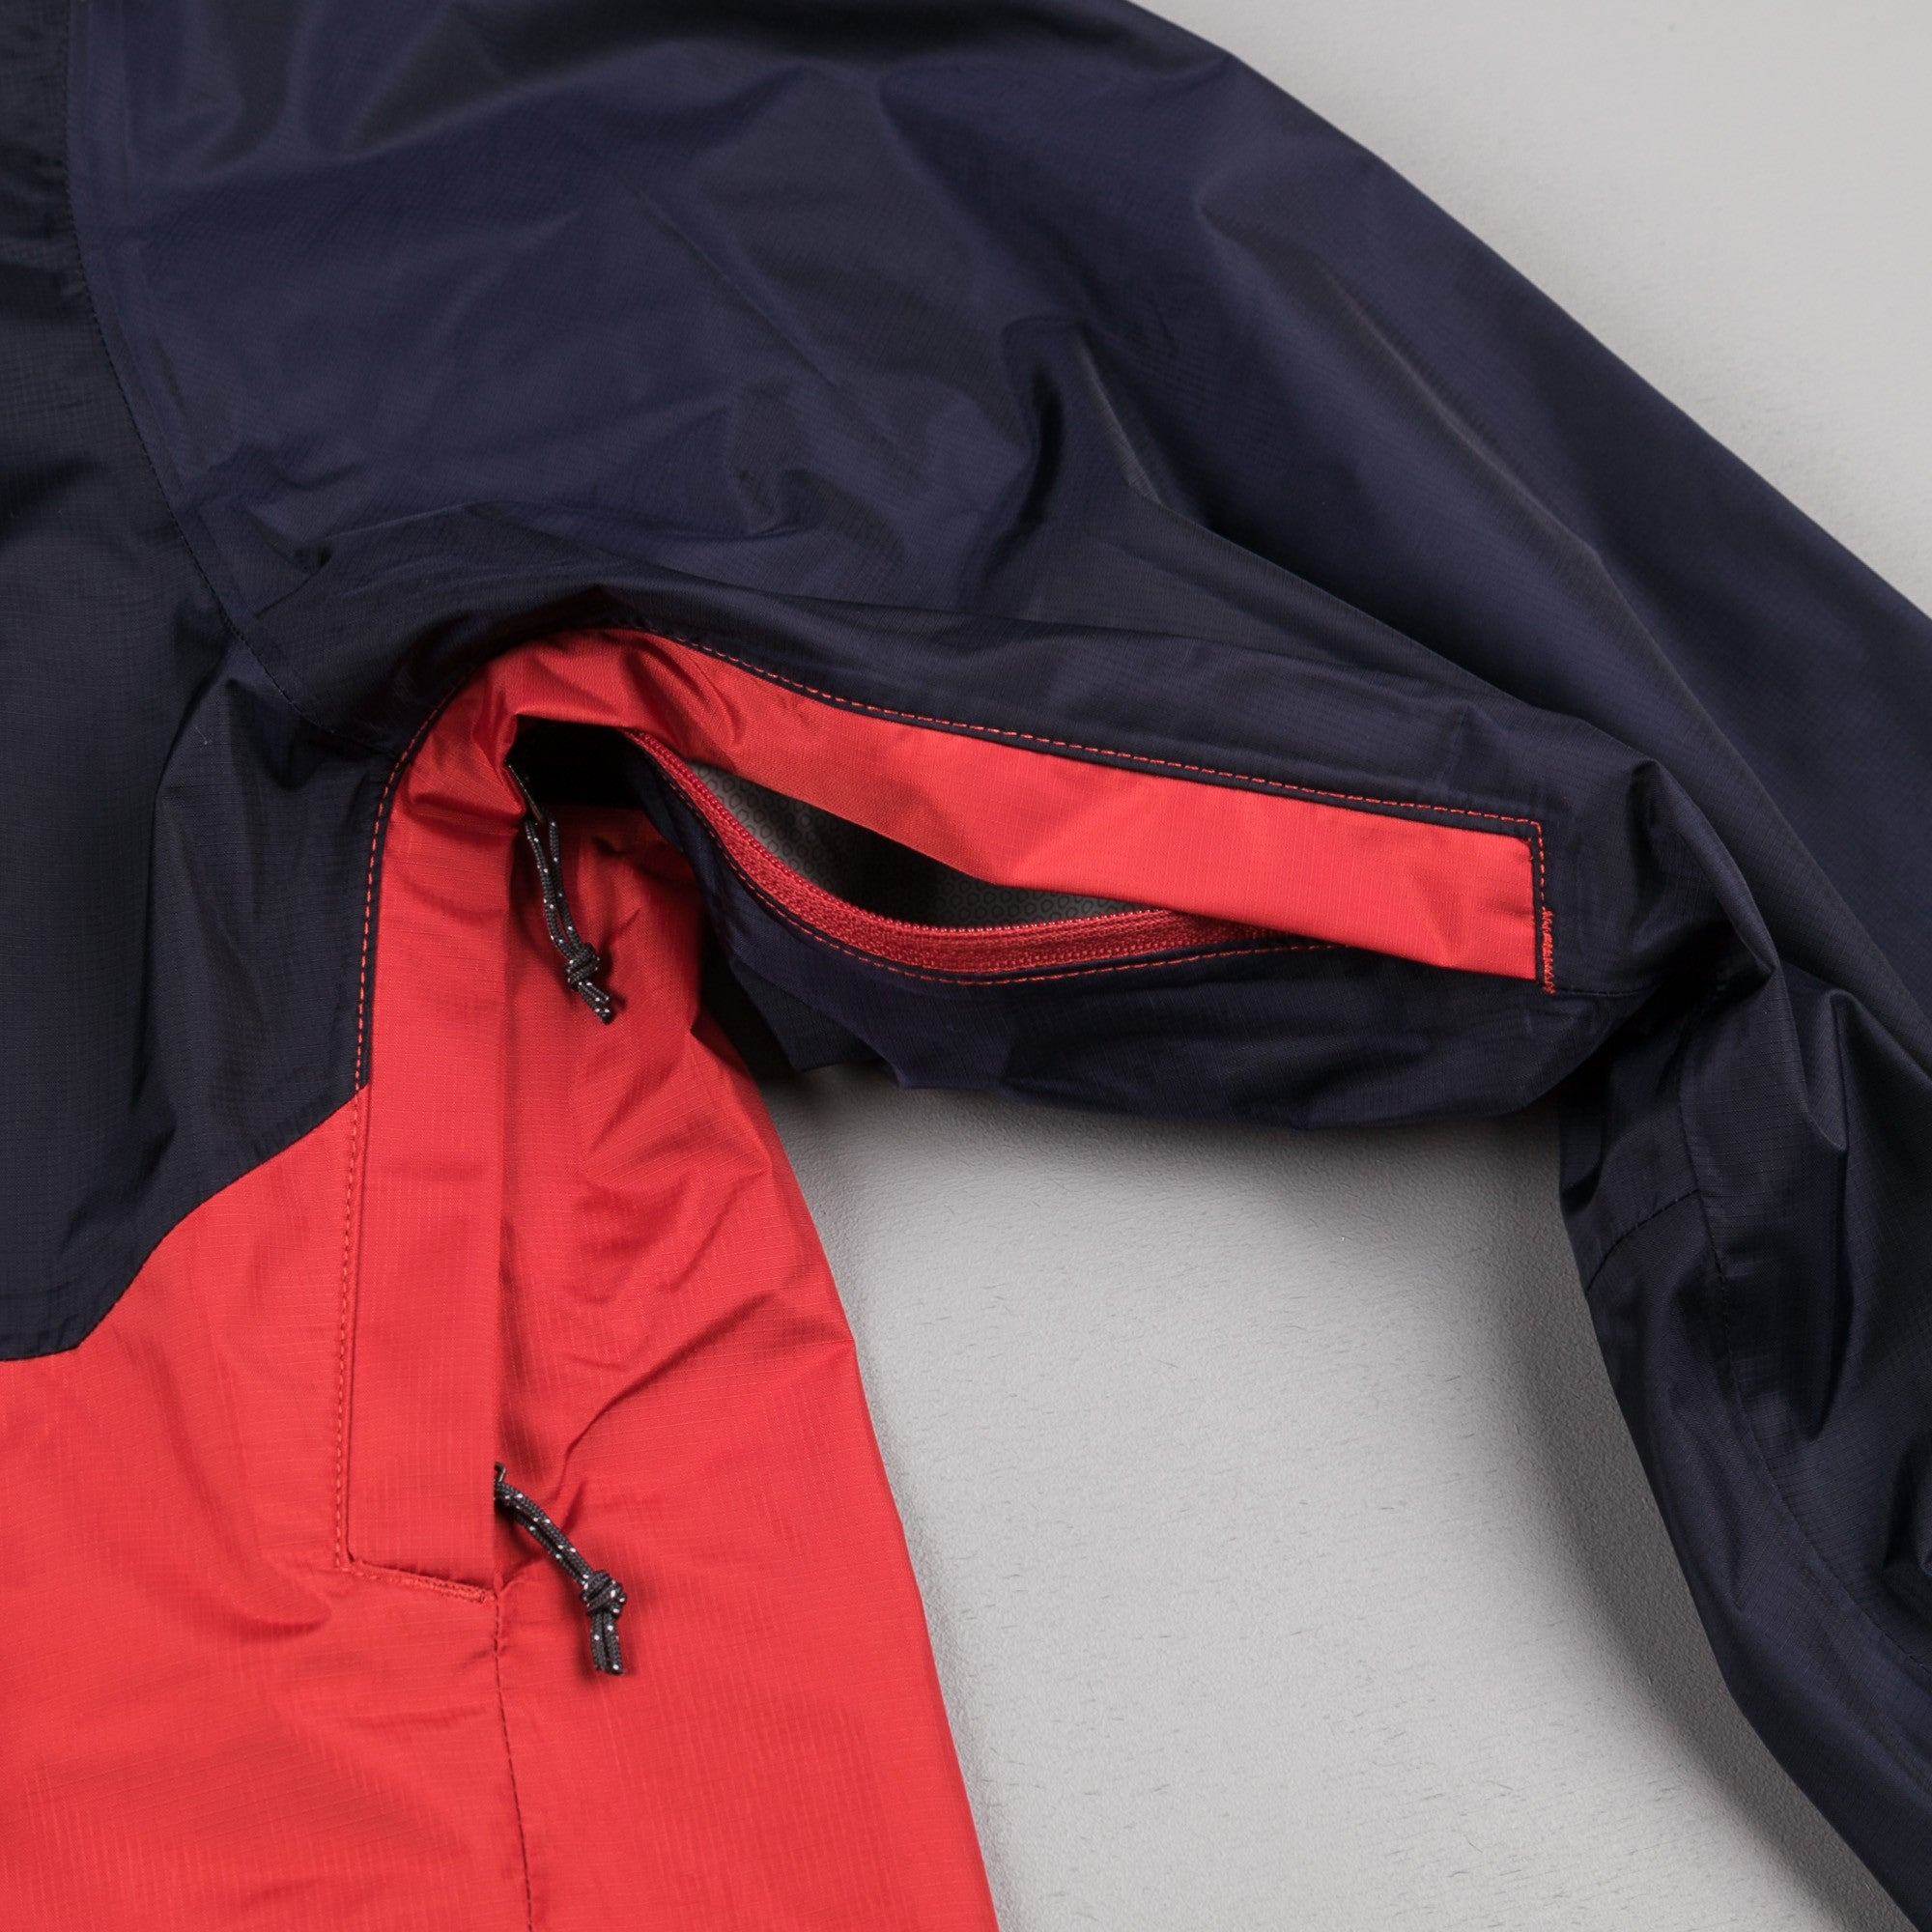 Patagonia Torrentshell Jacket - Navy Blue / Ramble Red